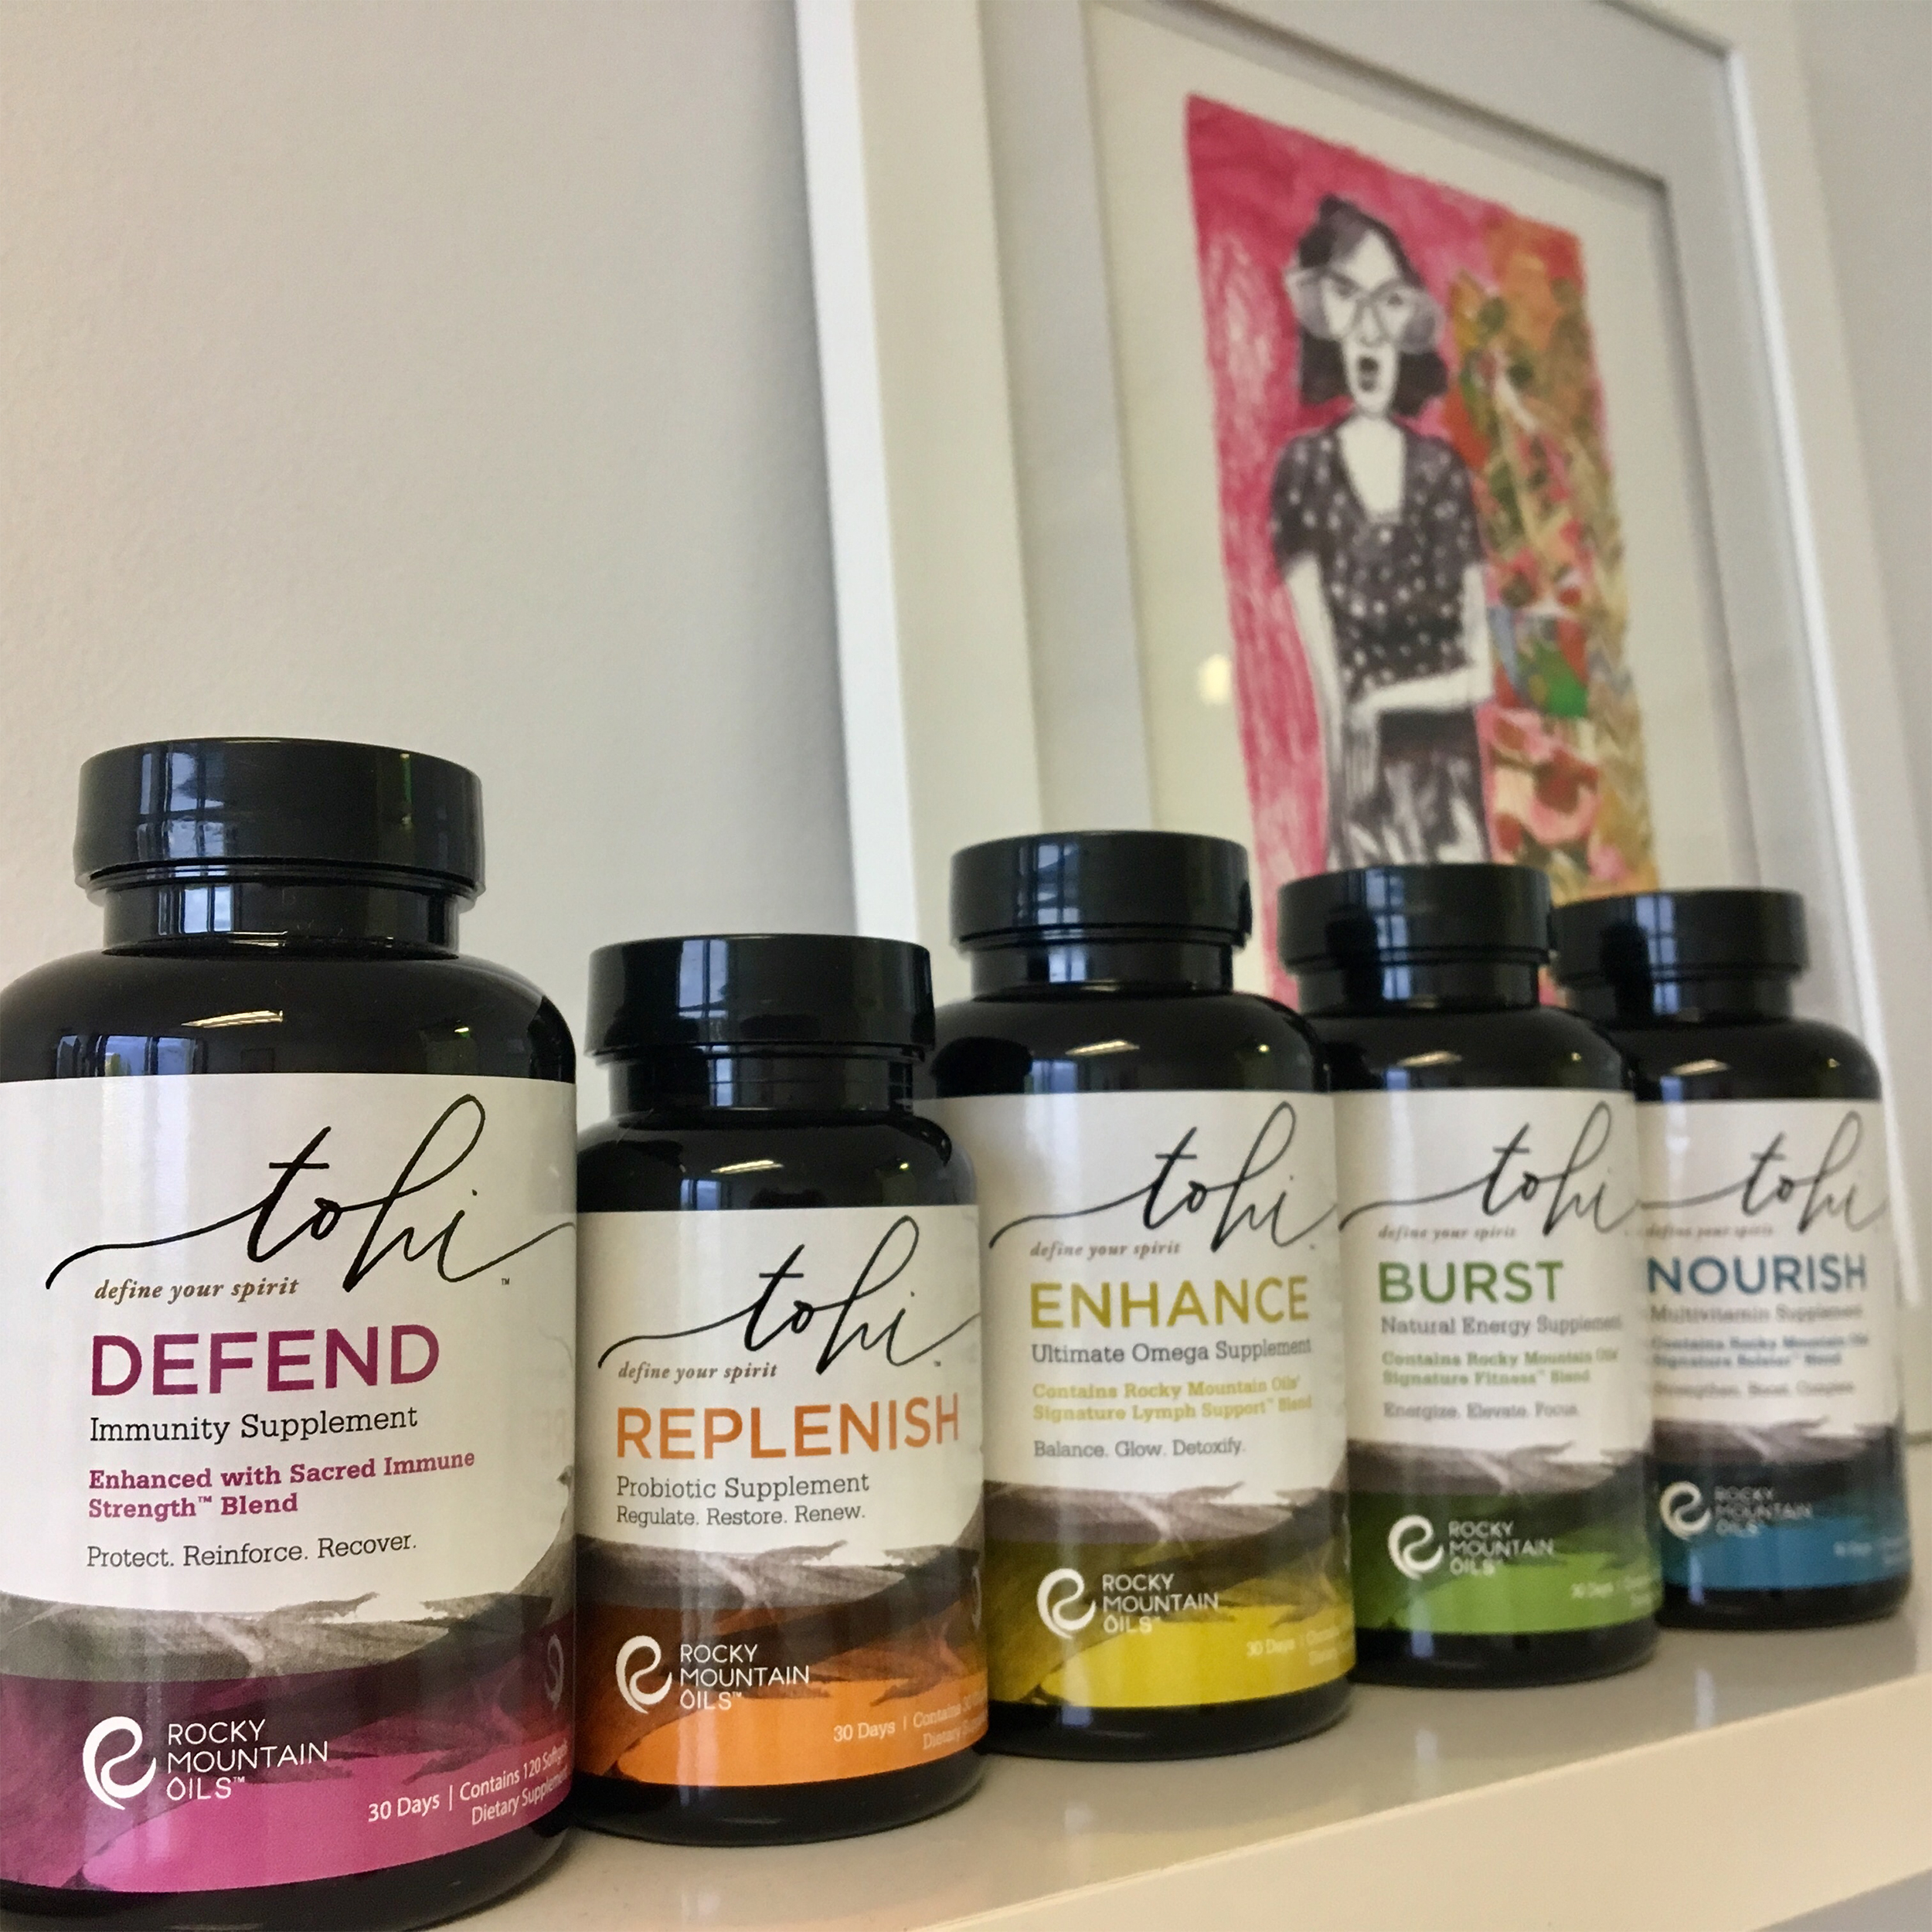 Rocky Mountain Oils   Expanding a brand's offerings in the wellness category.